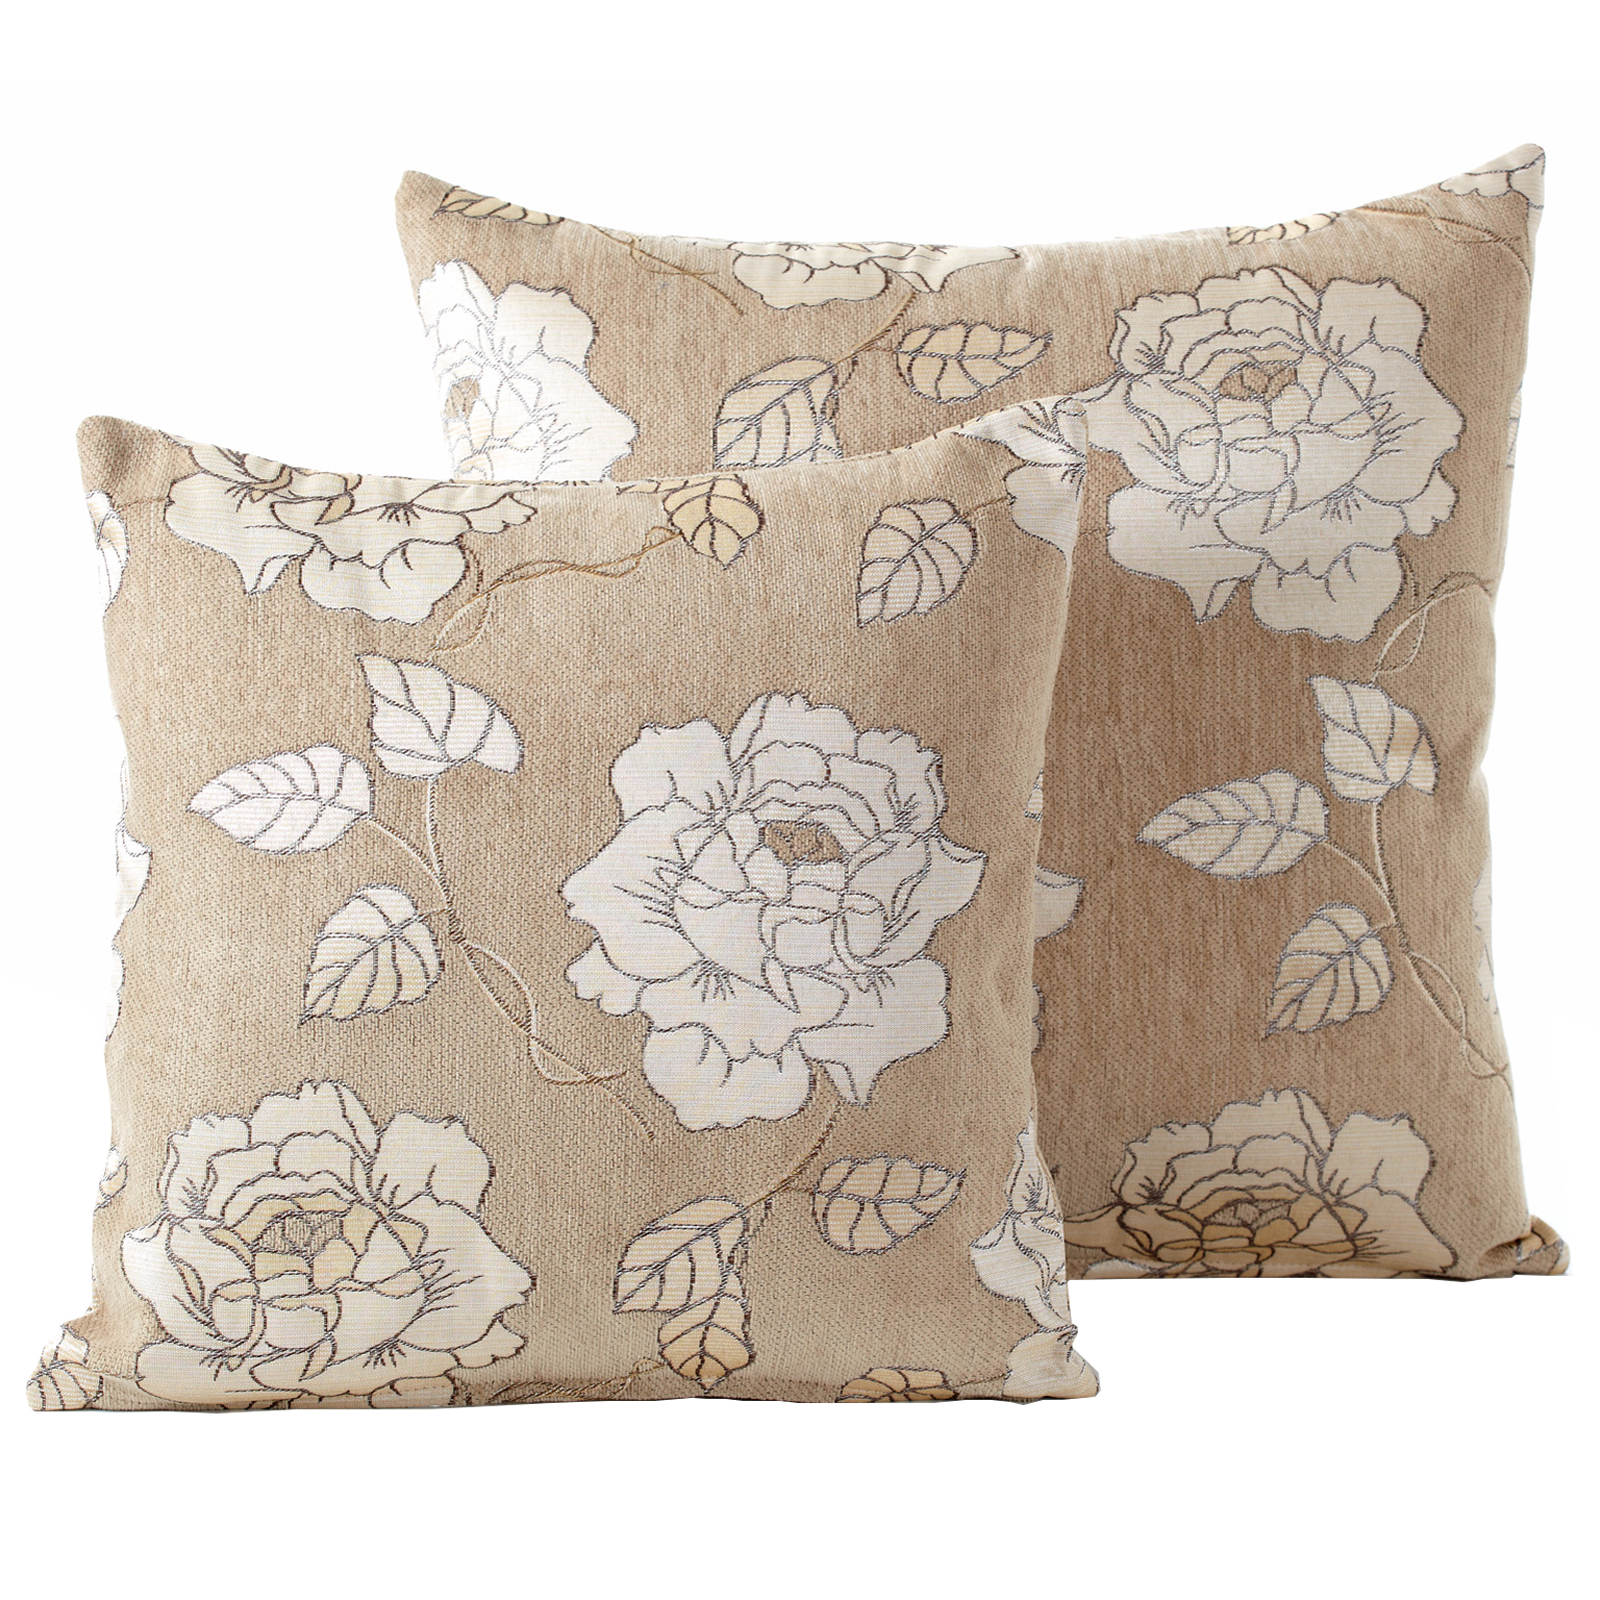 chenille rose cushions luxury floral woven scatter small. Black Bedroom Furniture Sets. Home Design Ideas